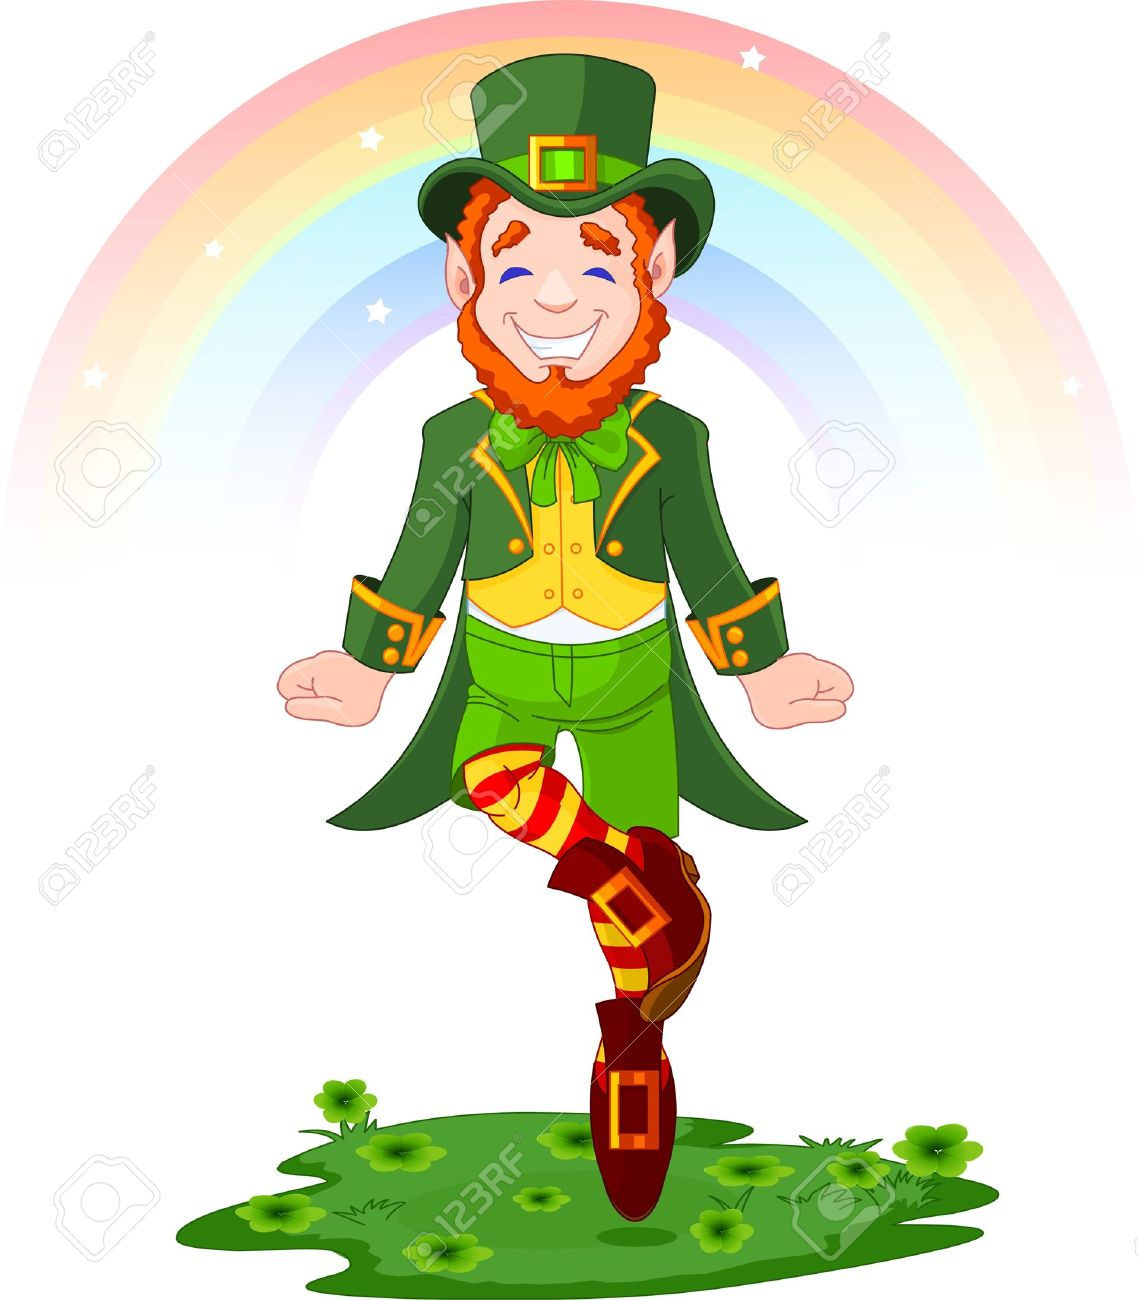 Full length drawing of a leprechaun dancing a jig for St. Patrick's Day Stock Vector - 8922695